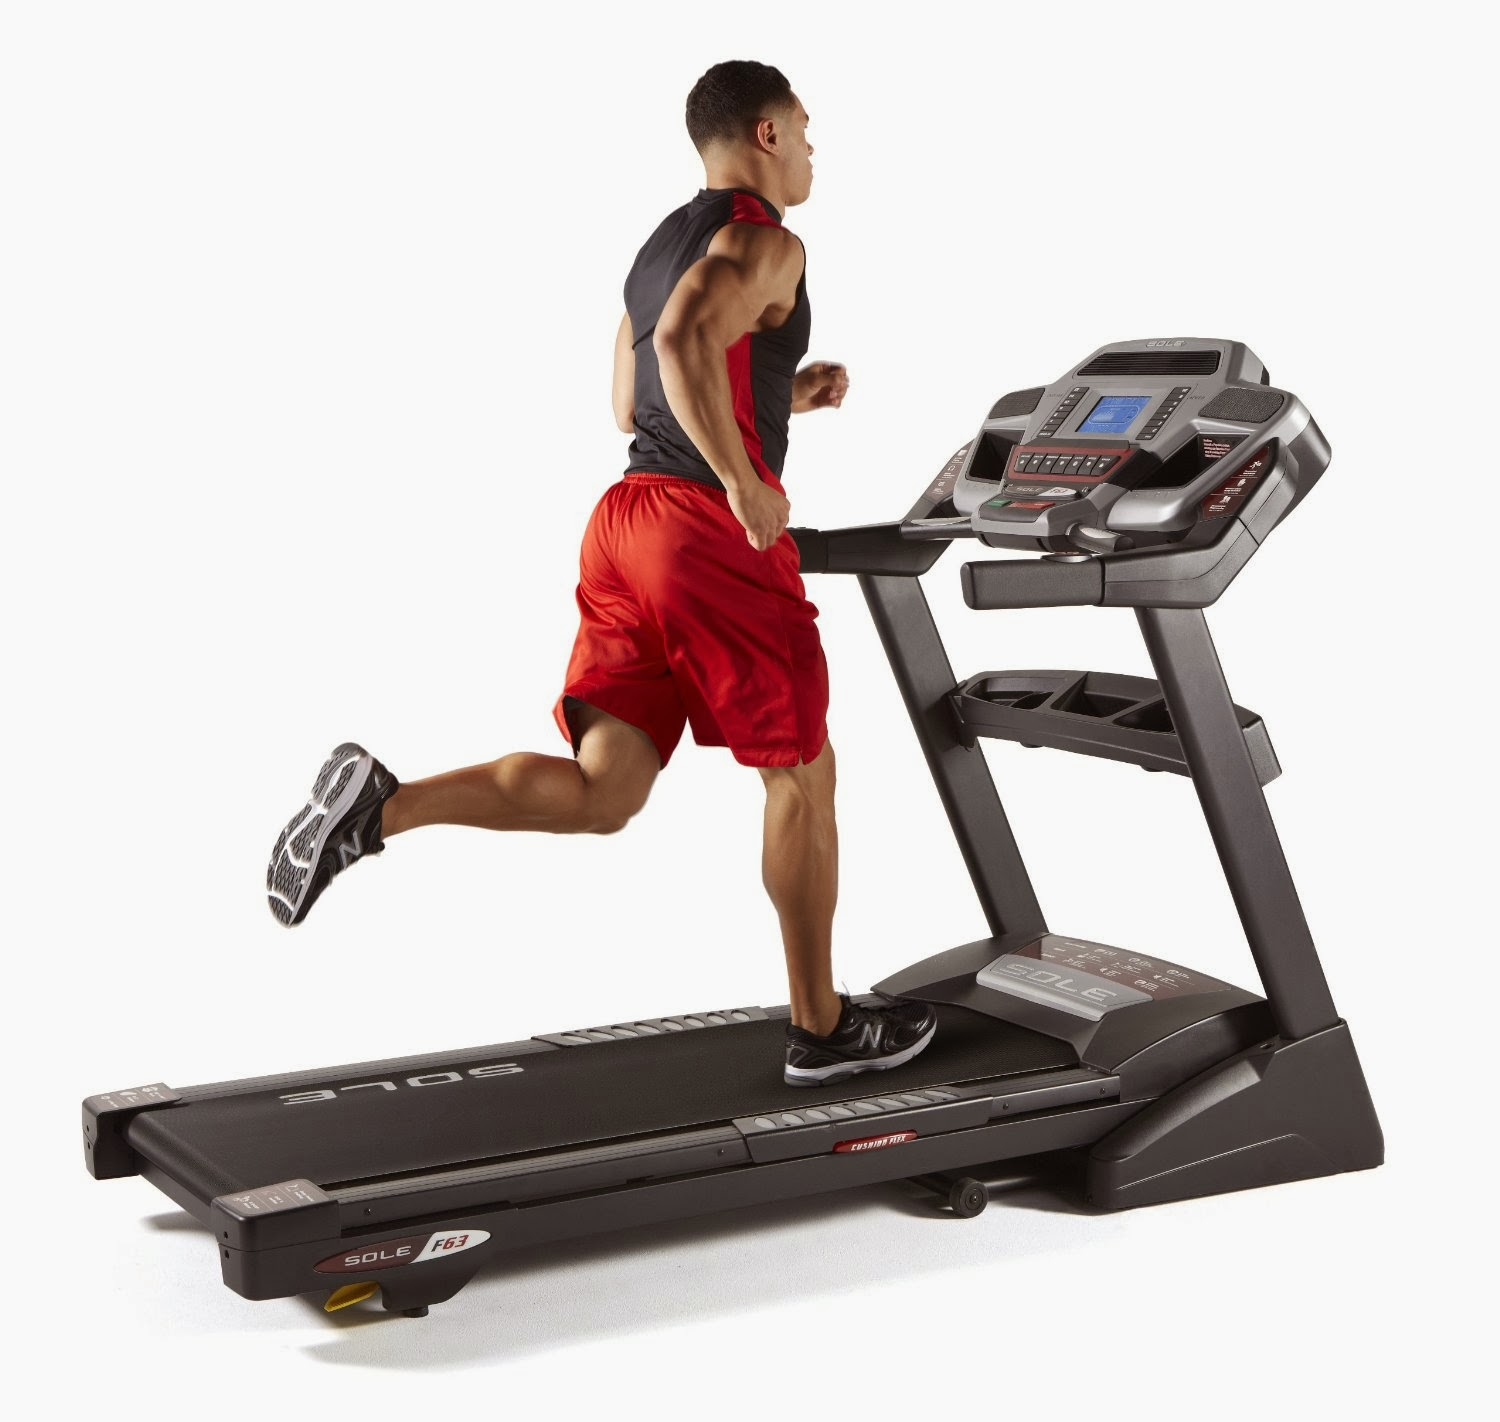 Sole Fitness F63 Treadmill, picture, review features & specifications, compare with Sole Fitness F80